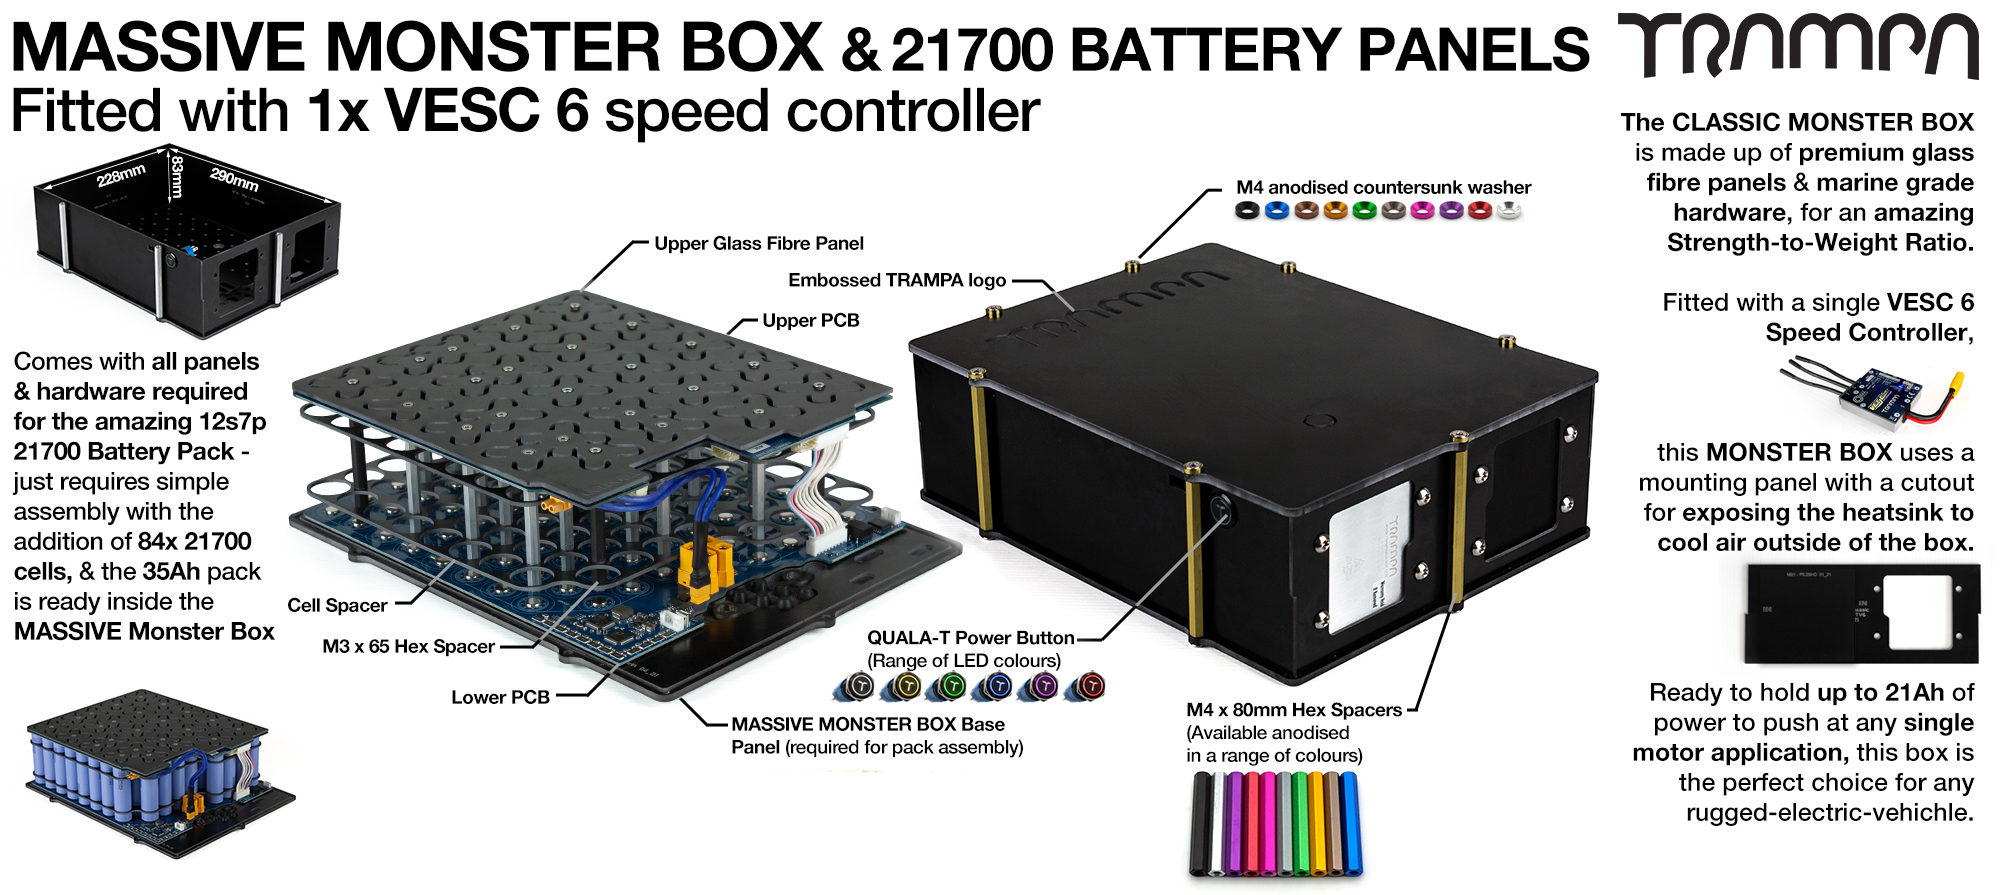 21700 MASSIVE MONSTER Box with 21700 PCB Pack with 1x VESC 6 - NO CELLS